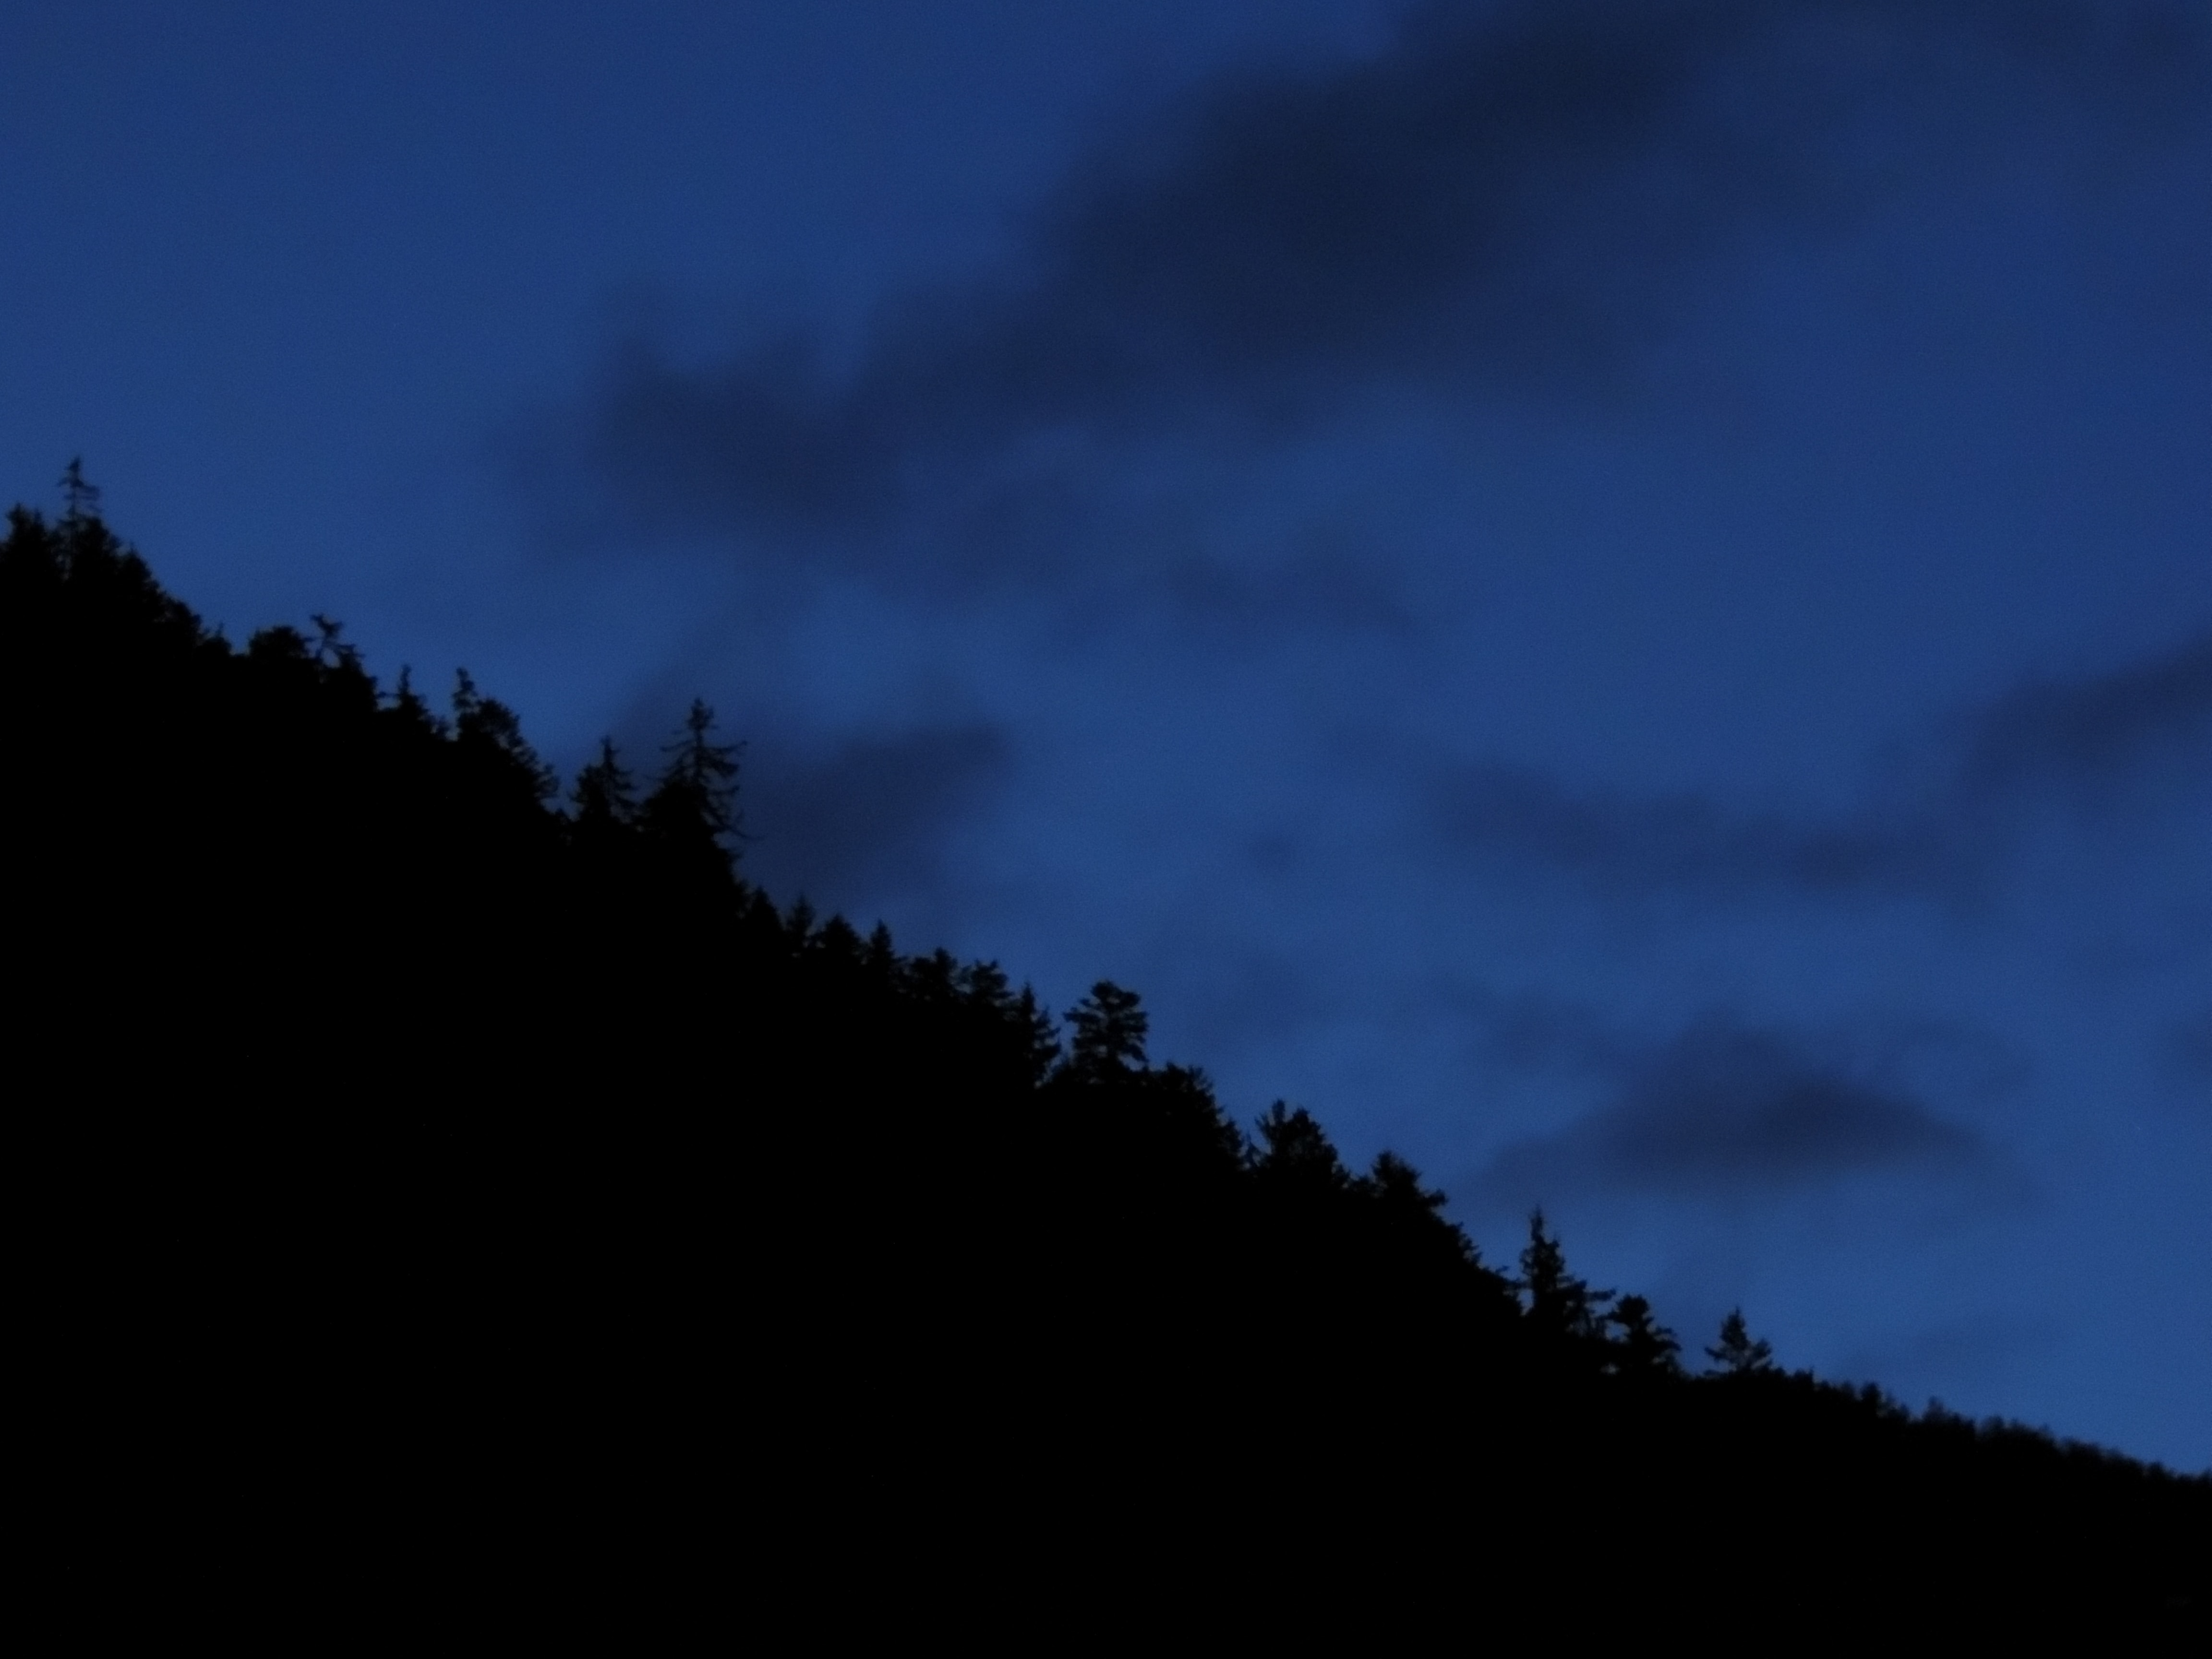 silhouette photo of trees on hill